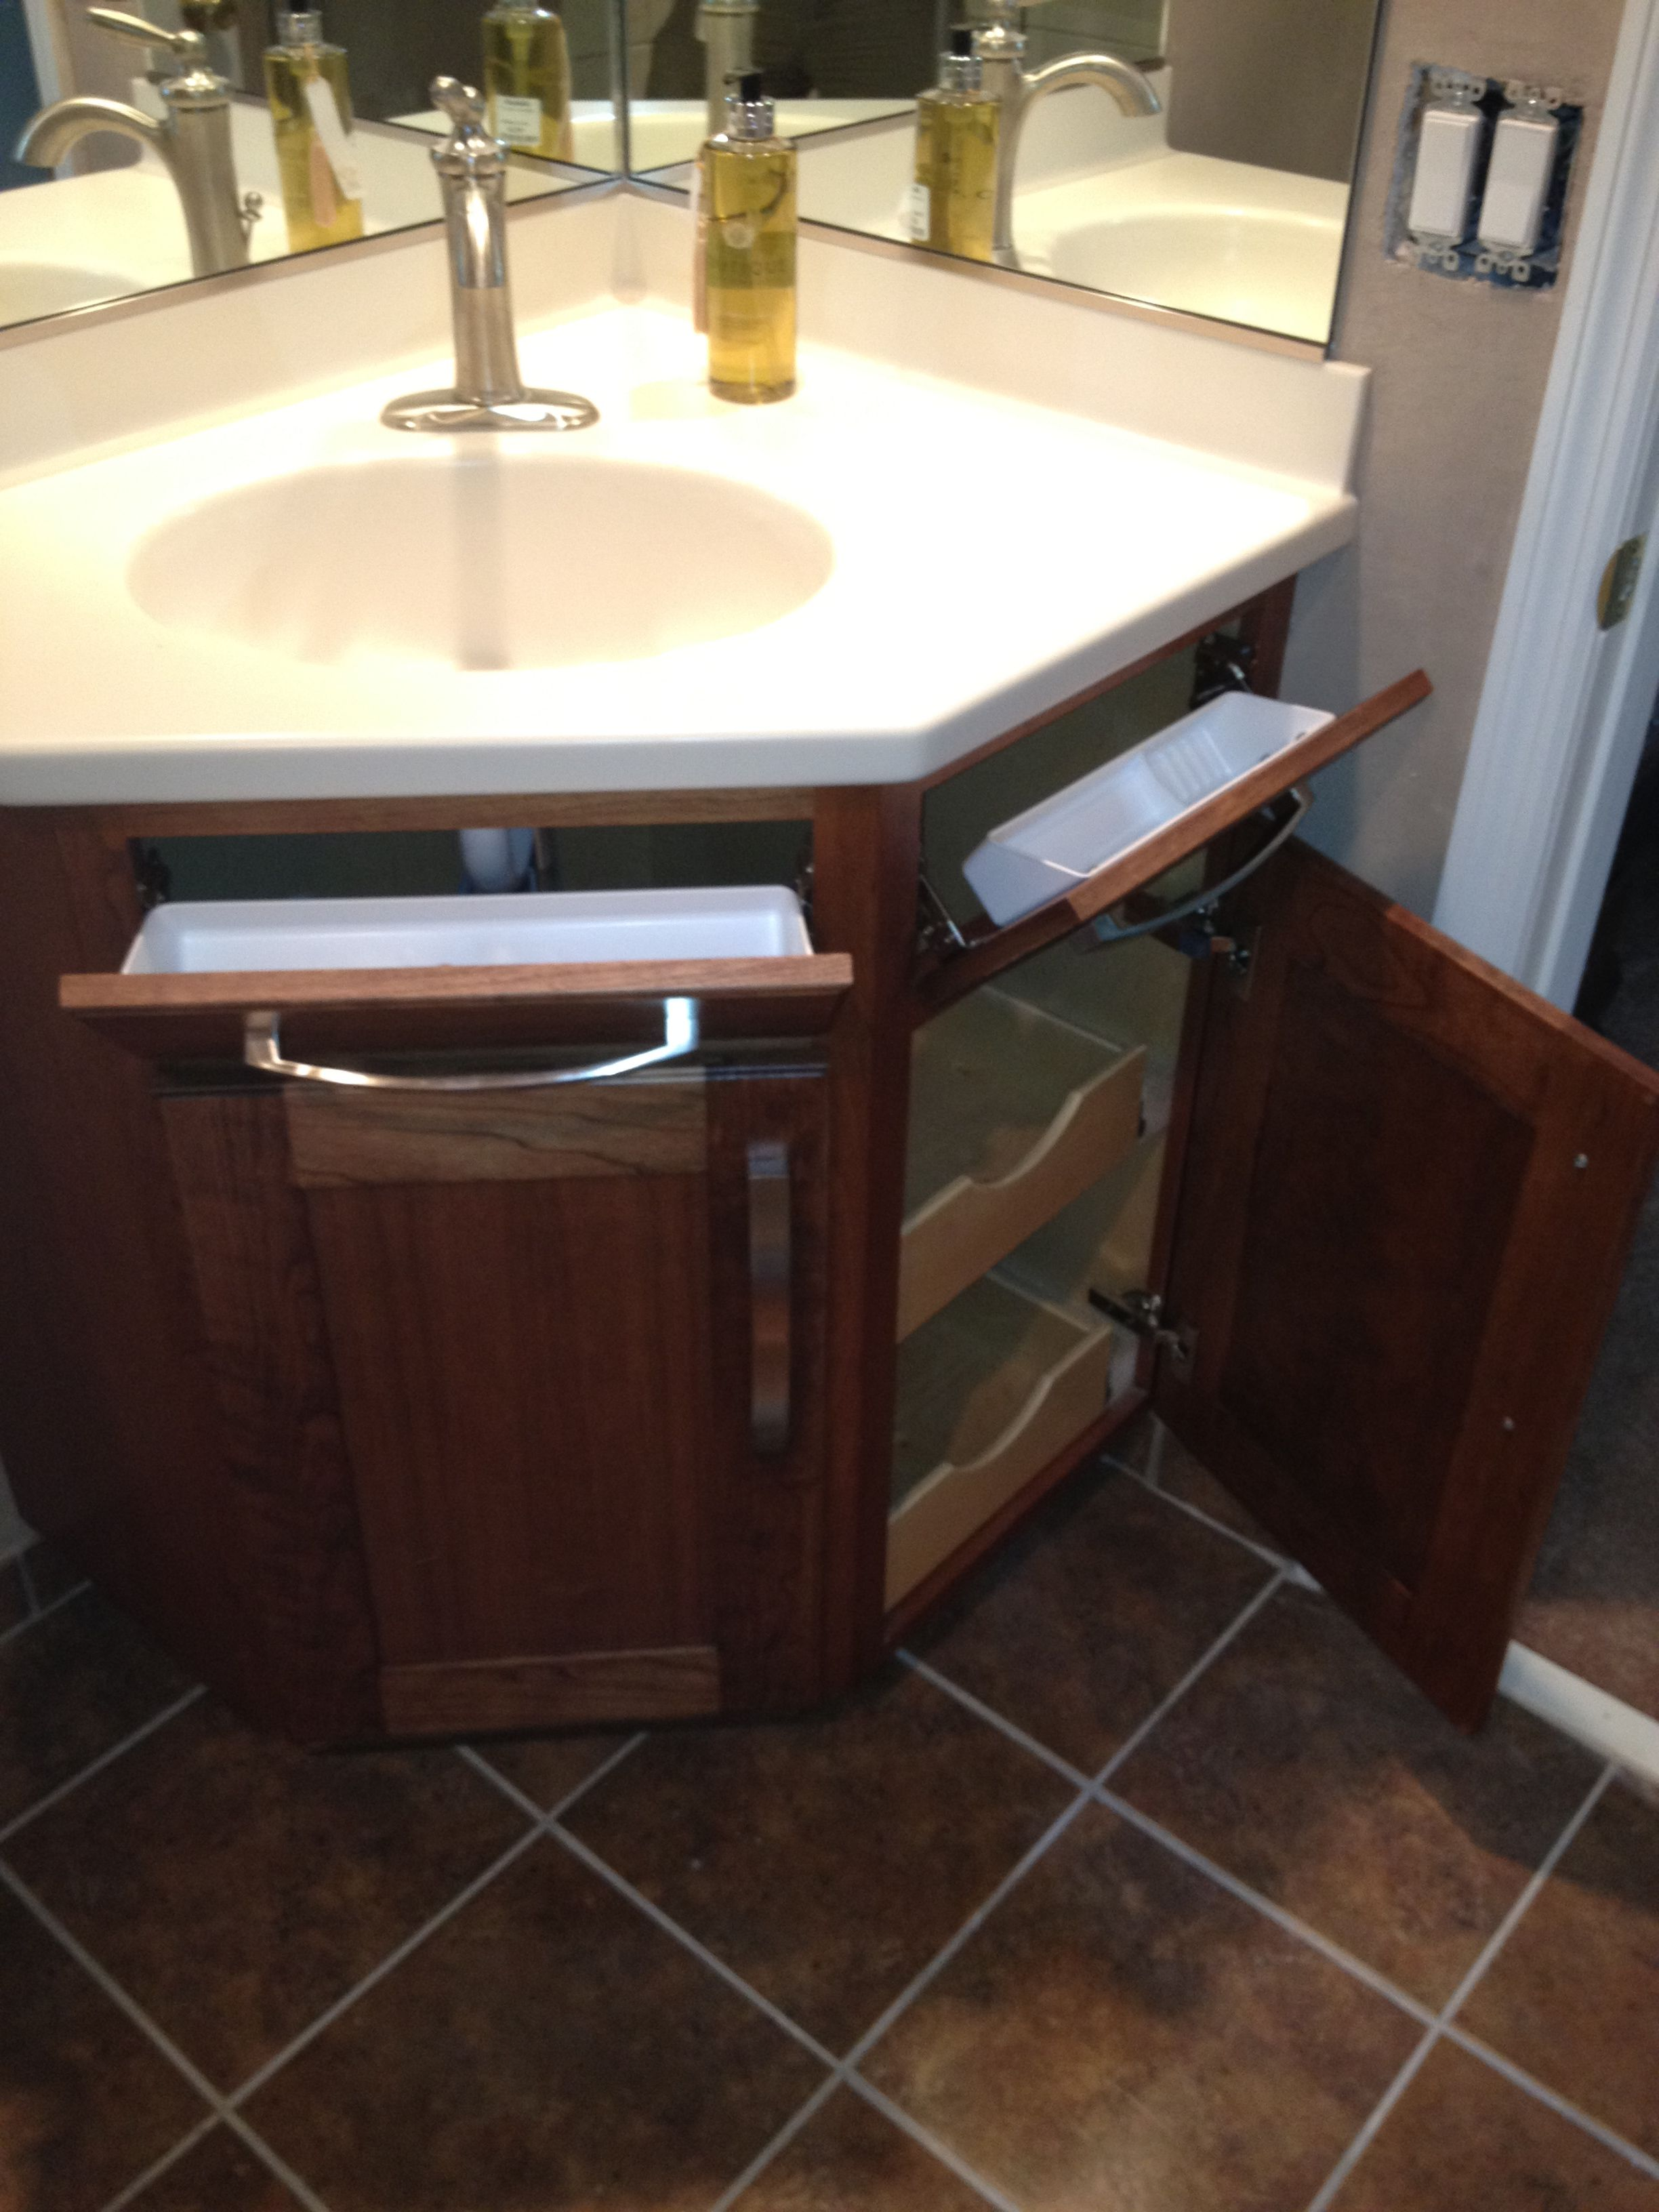 So Much Storage Space On This Stained Cherry Bathroom Vanity The